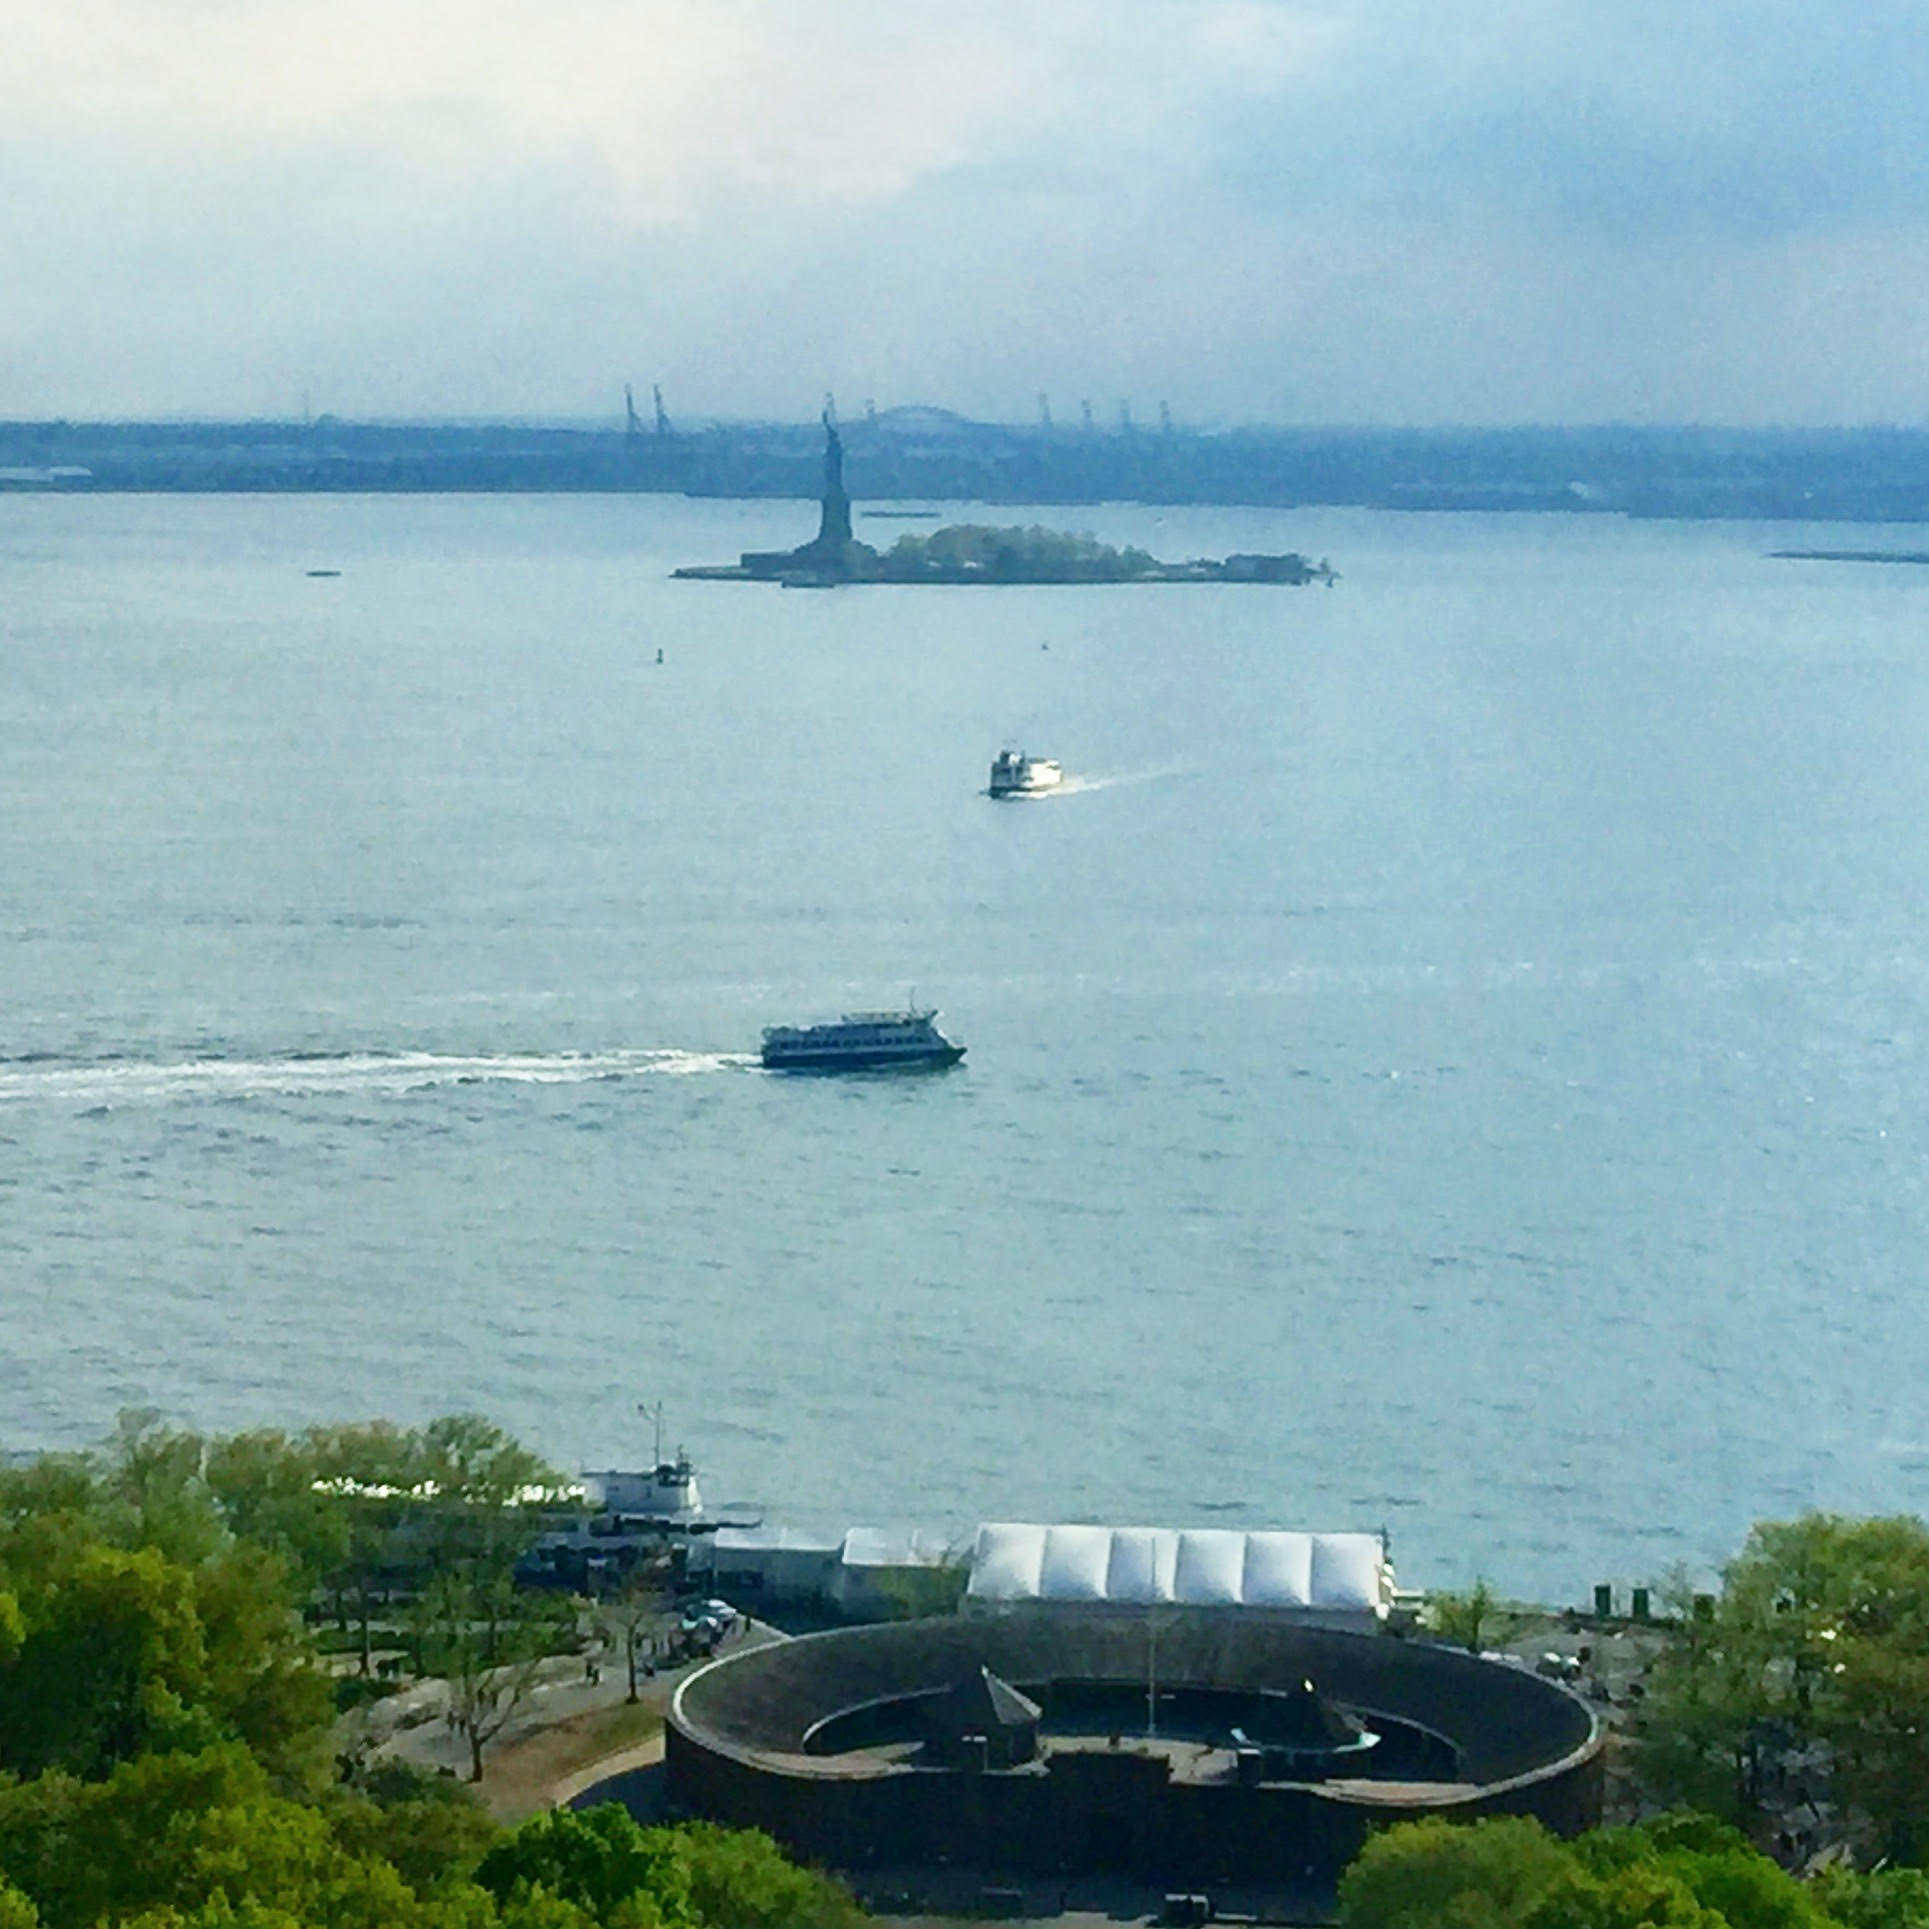 The view from our seminar room at Cornell University's Art Architecture Planning space in Battery Park, NYC. Not a bad place to ponder the many faces of art and law (May 7, 2018).